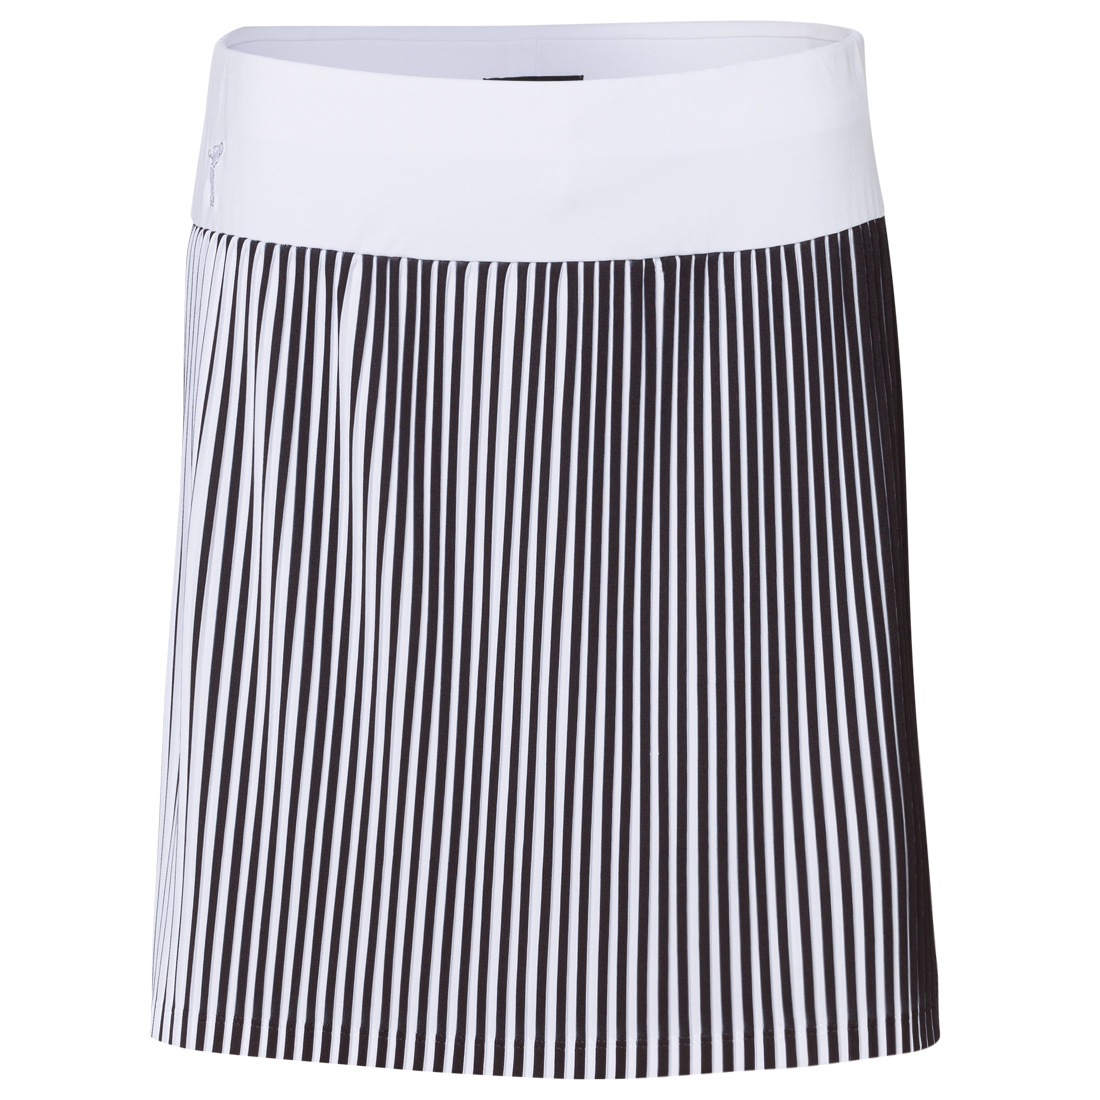 Ladies' skort with stripe pattern